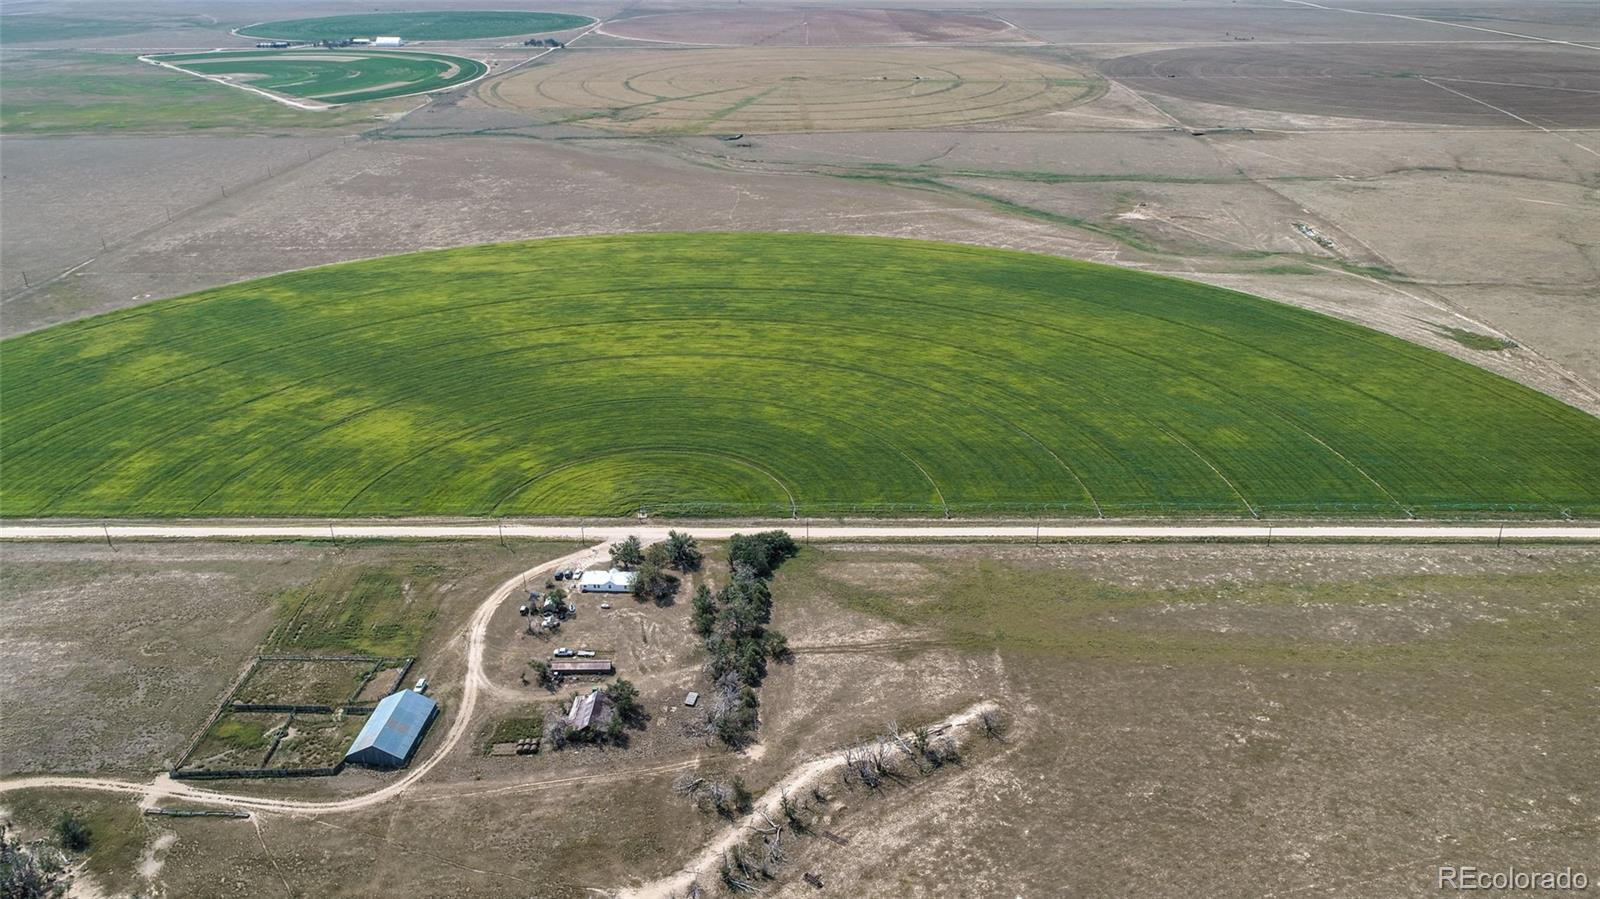 Finally!!! Now Is Your Chance To Own A Family Ranch That Has Been Family Owned and Operated For Years*Take A Look At What This Property Has To Offer*Approx. 430 Total Acres*227 of Irrigated Ground*Pivots*Irrigation Equipment In Place*Great Option To Grow Your Irrigated Crop Of Choice*Seller Has Planted Several Different Crops Over The Years*203 Acres of Grassland*Water Rights INCLUDED IN THE SALE*Farm House (currently tenant occupied) For Your Hired Hand or Your Rental Income*Build Your Dream Home and work on the Ranch*Outbuildings*Corrals*Property is Fully Fenced and Cross Fenced And Fencing Is In Good Condition*Seller Has Taken Great Pride In This Ranch For Many Years, So The Ground And The Irrigation Equipment Is In Great Condition*Ranch Can Be Sold In Several Different Ways*Great Location, approx 45 minutes to Colorado Springs, 90 Minutes to Denver*There Is To Many Options To List For This Ranch*What Do You Want To Buy? Like What You See? You Will Not Be Disappointed*